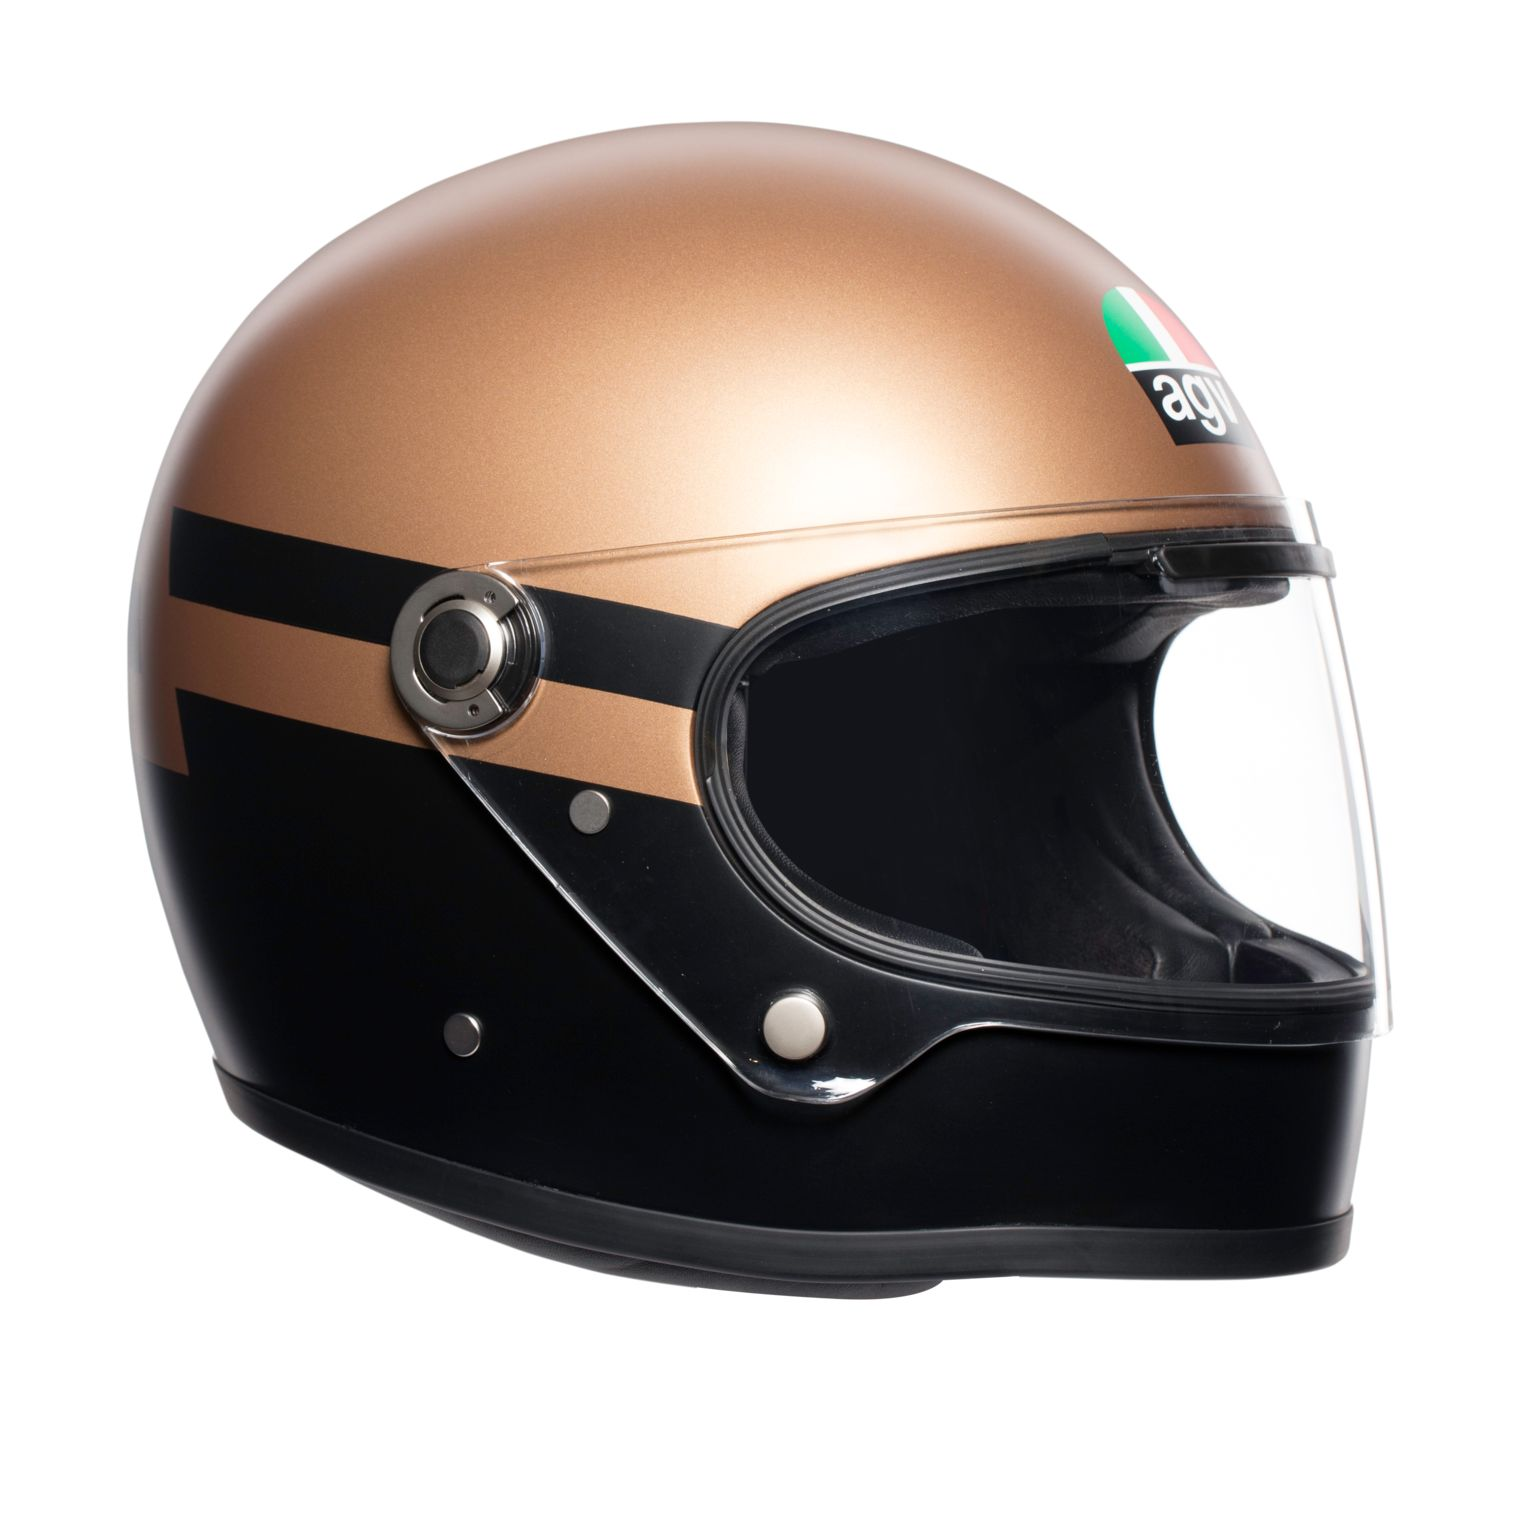 Casque AGV X3000 - SUPERBA